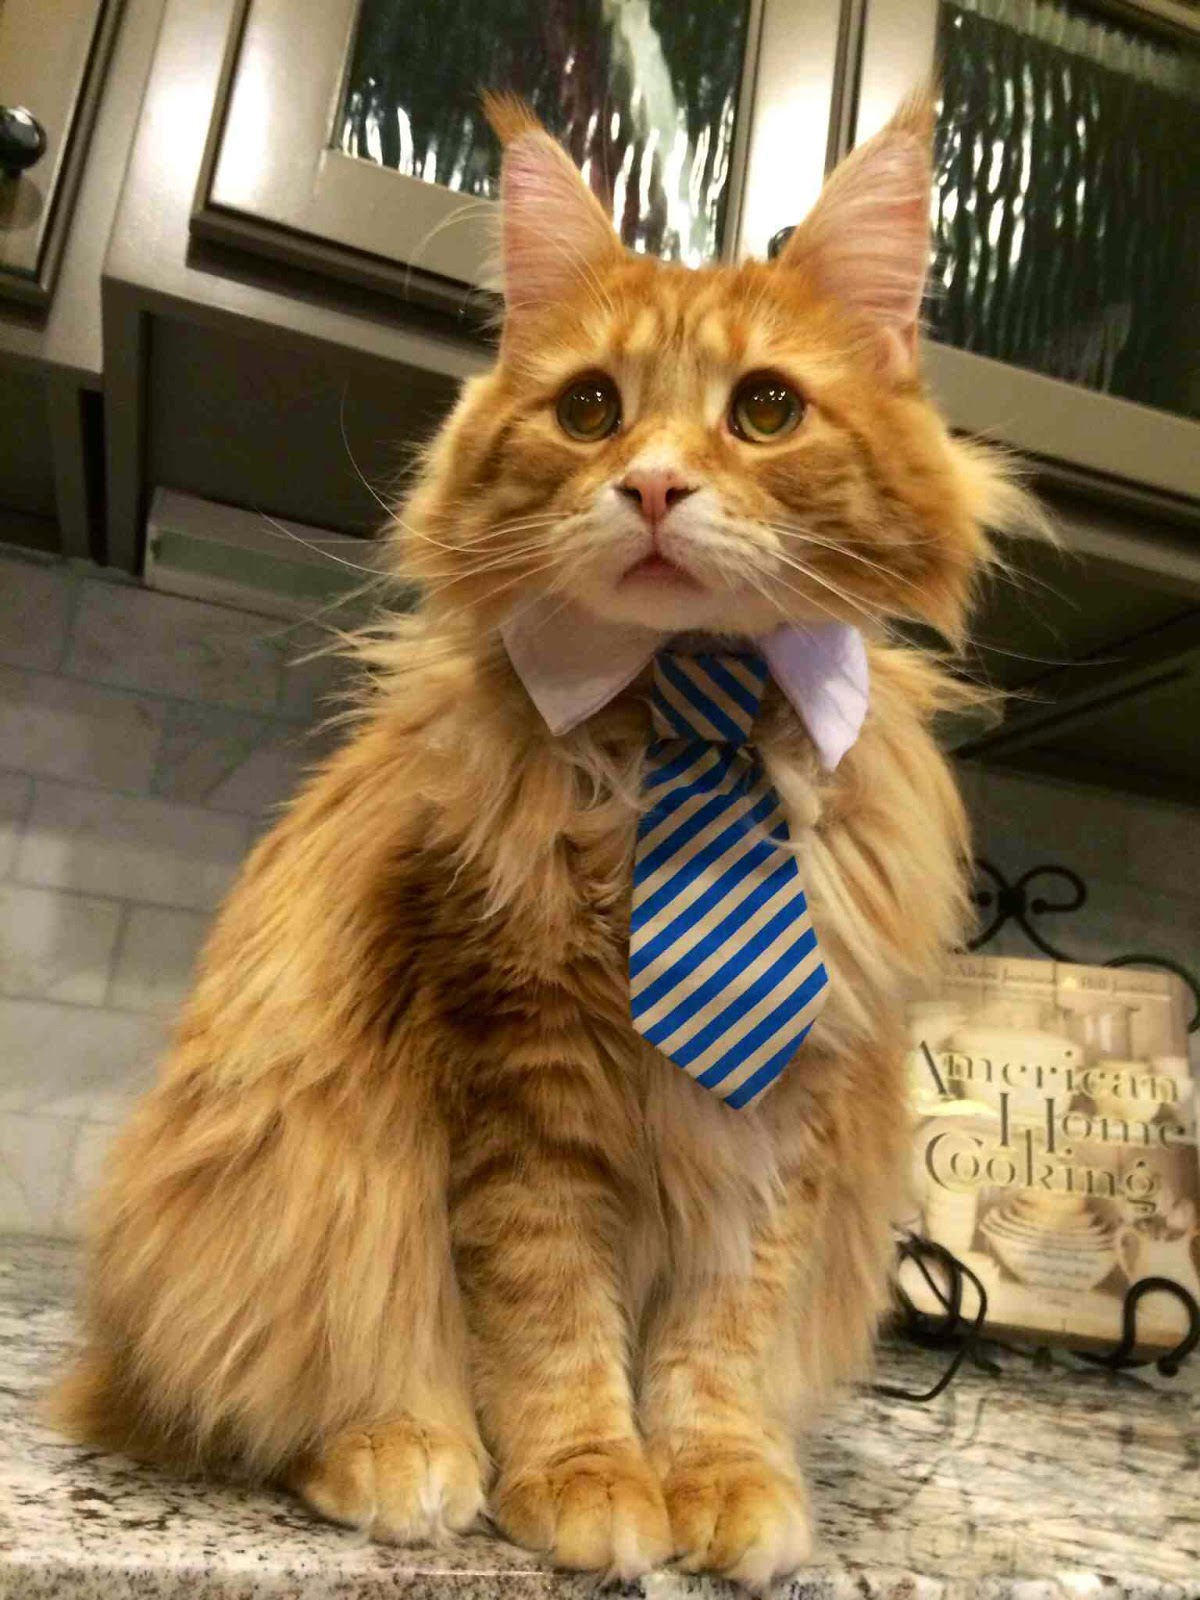 Funny cats - part 99 (40 pics + 10 gifs), cat pictures, beautiful cat wears tie